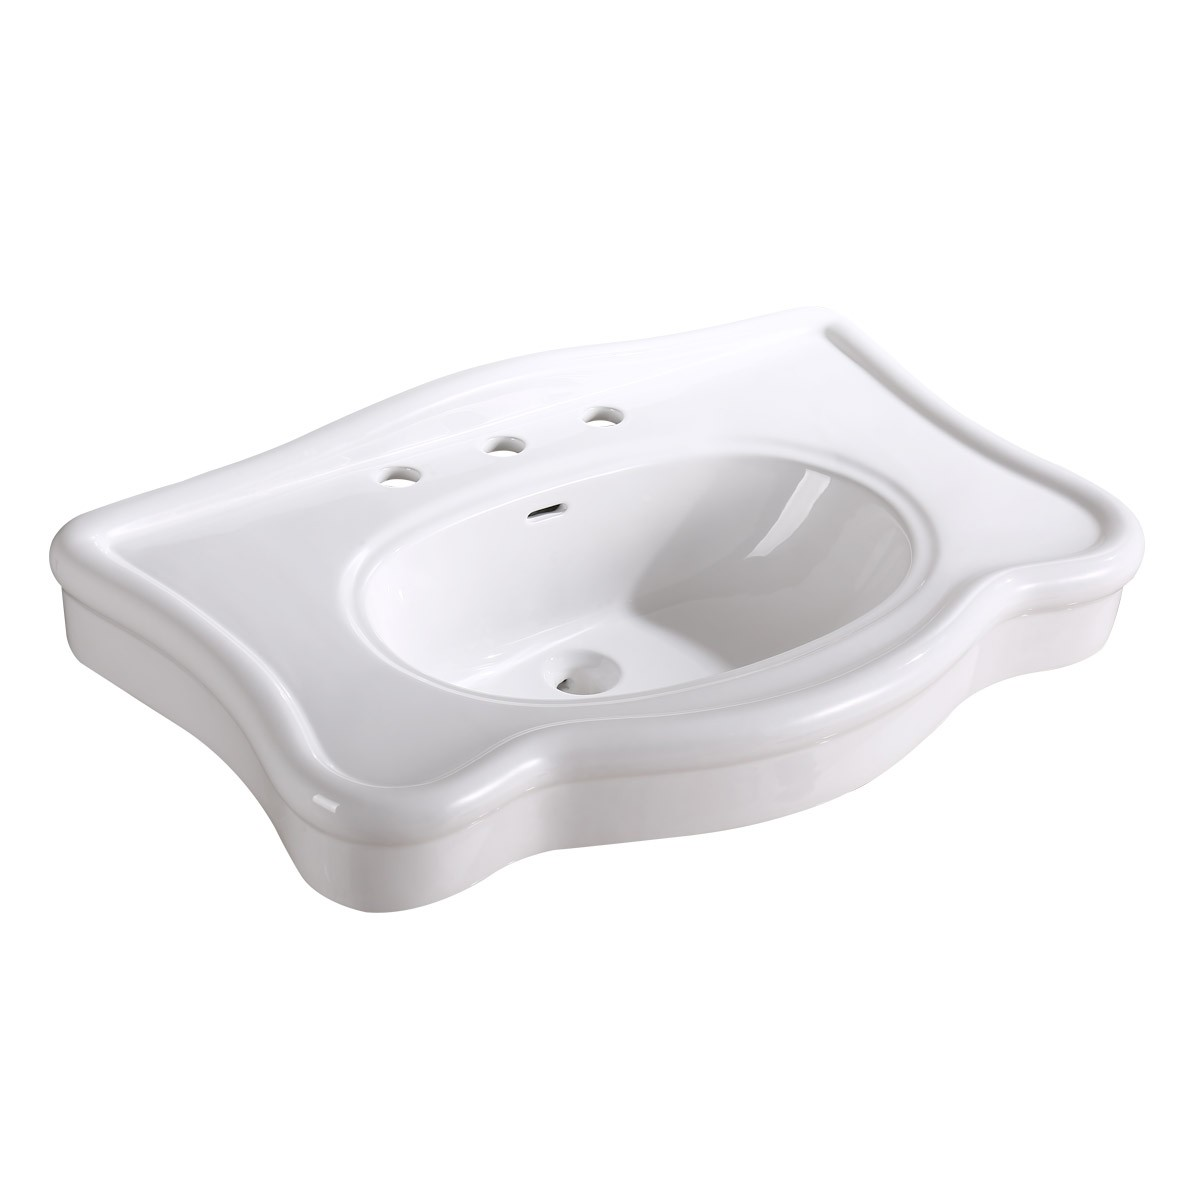 Bathroom Console Sink Deluxe Counter Top White Porcelain Bathroom Console Sink Console Sinks Console Sinks